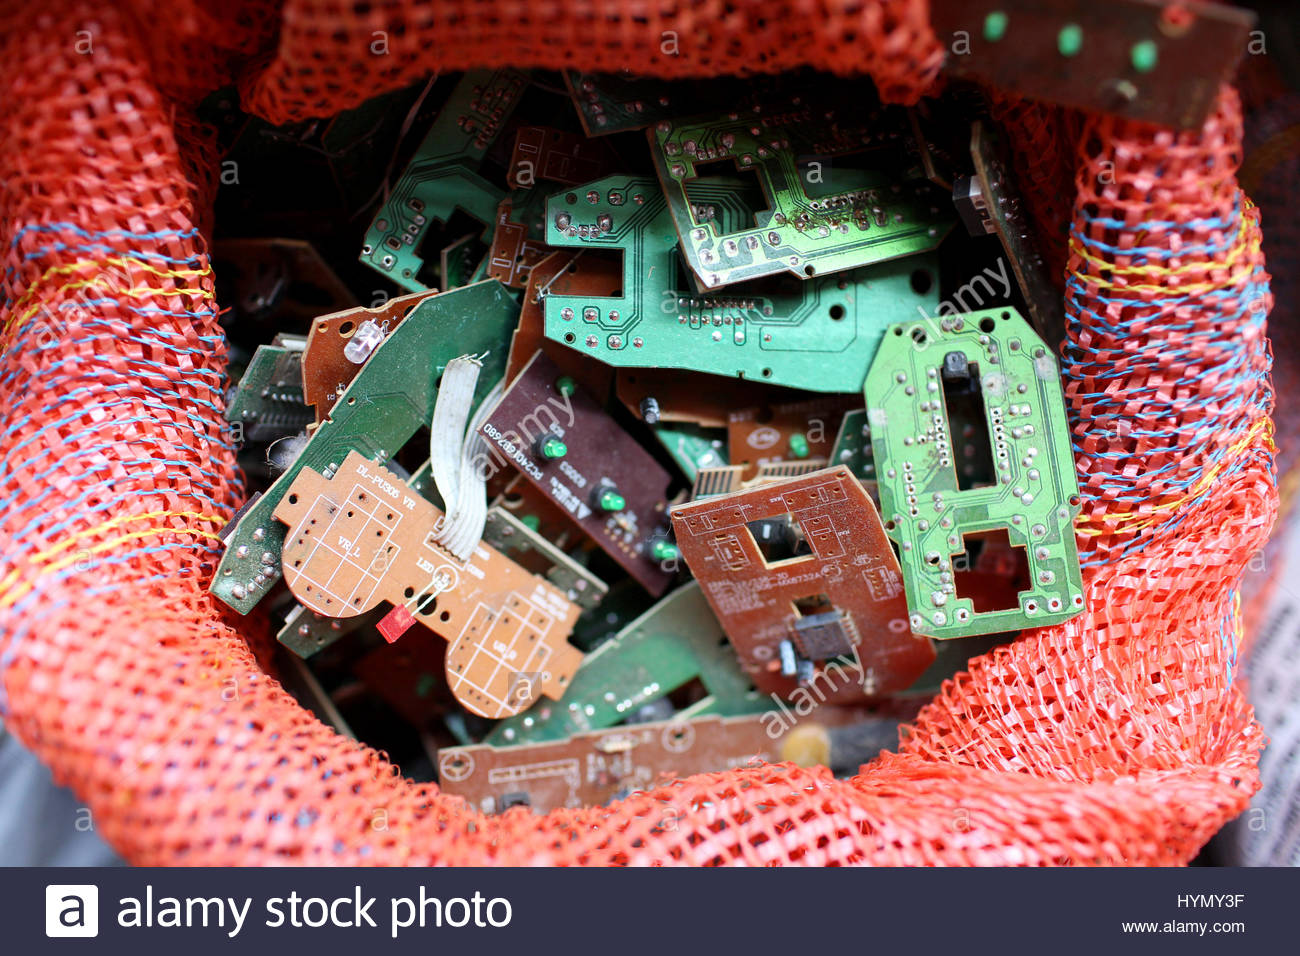 Small Circuit Boards In A Bag Village Near Kolkata Whose Stock How To Recycle Residents E Waste